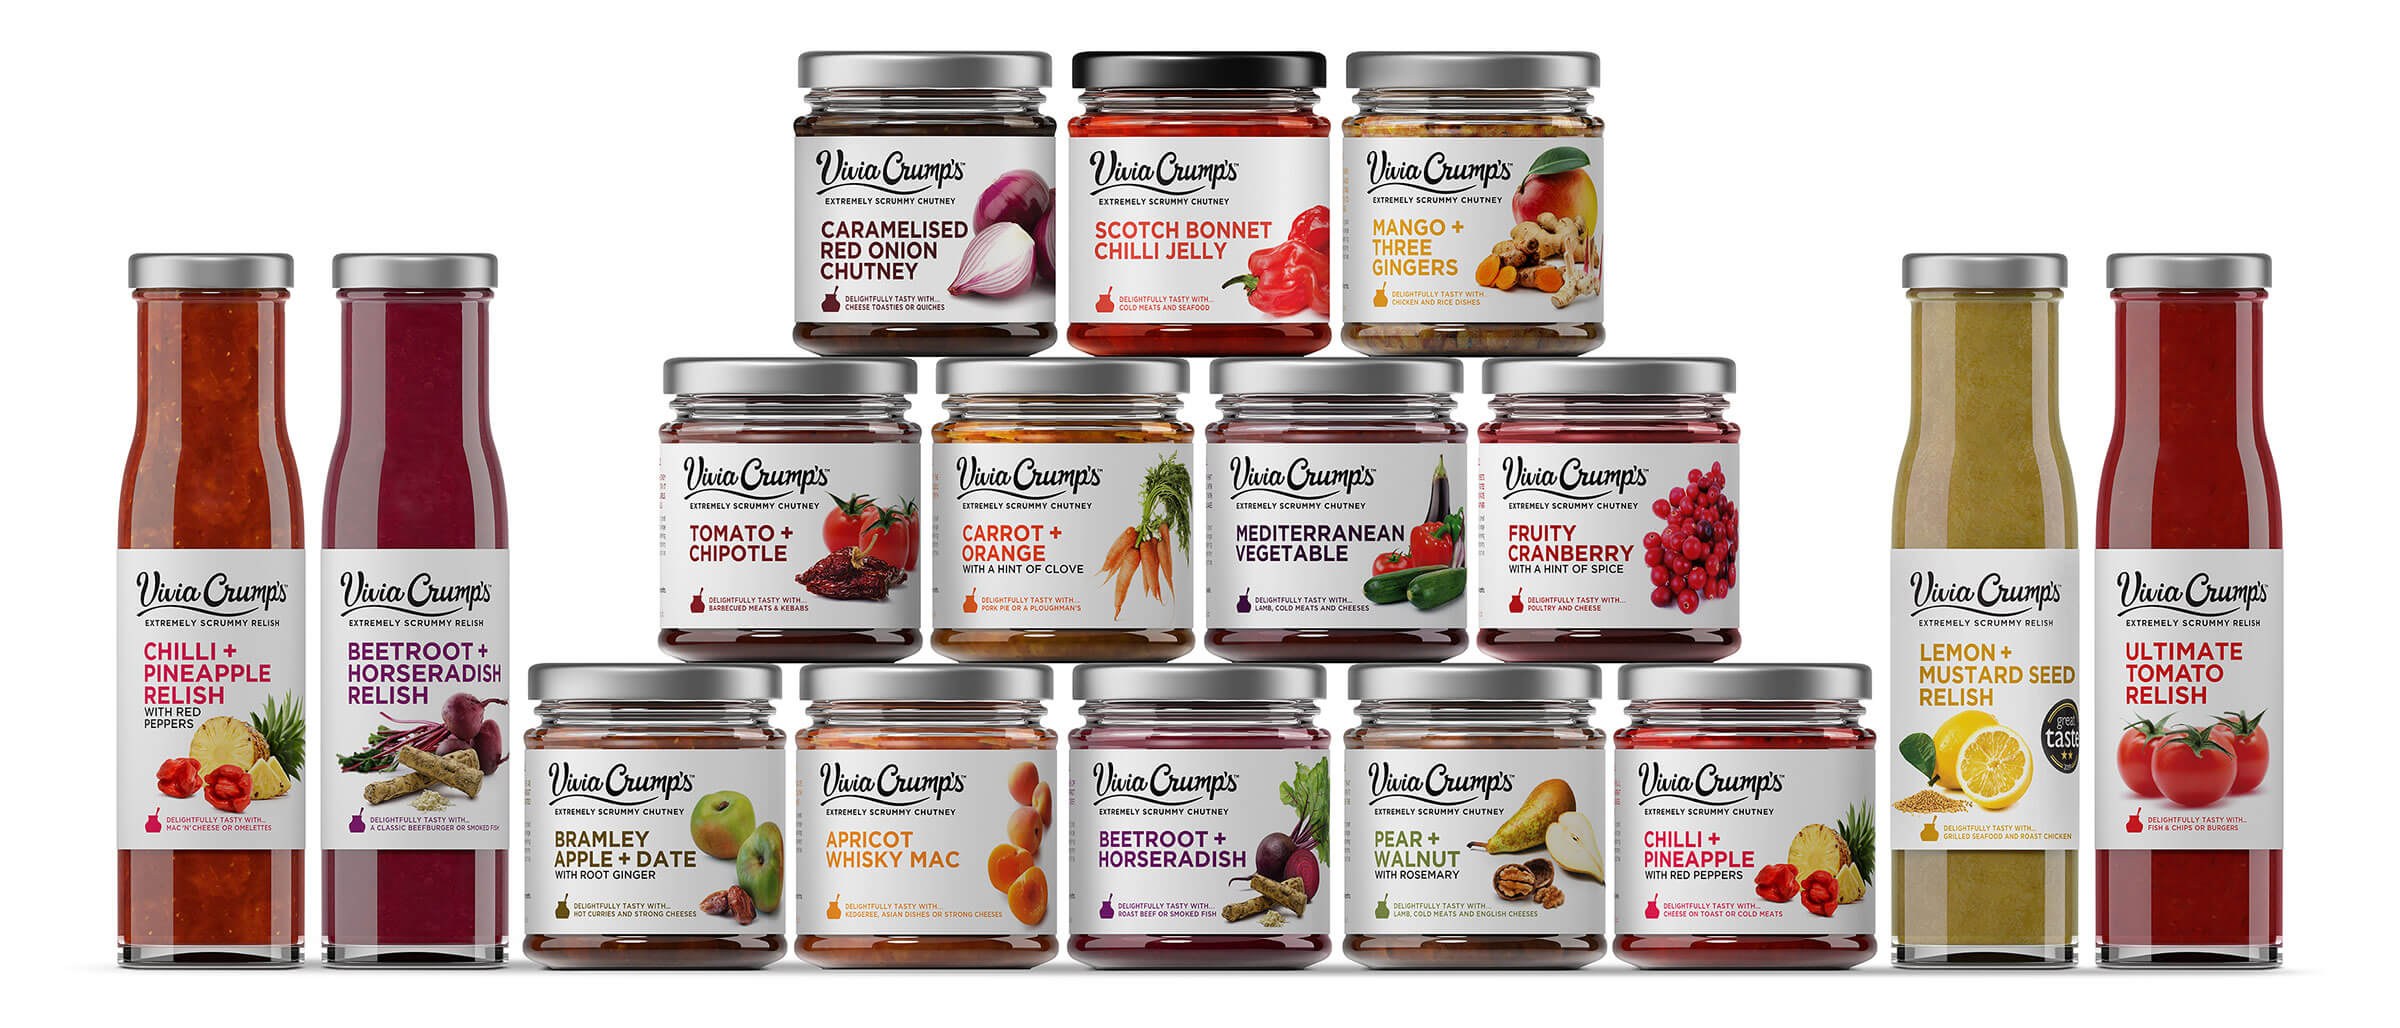 Full range of relishes and chutneys by Vivia Crumps